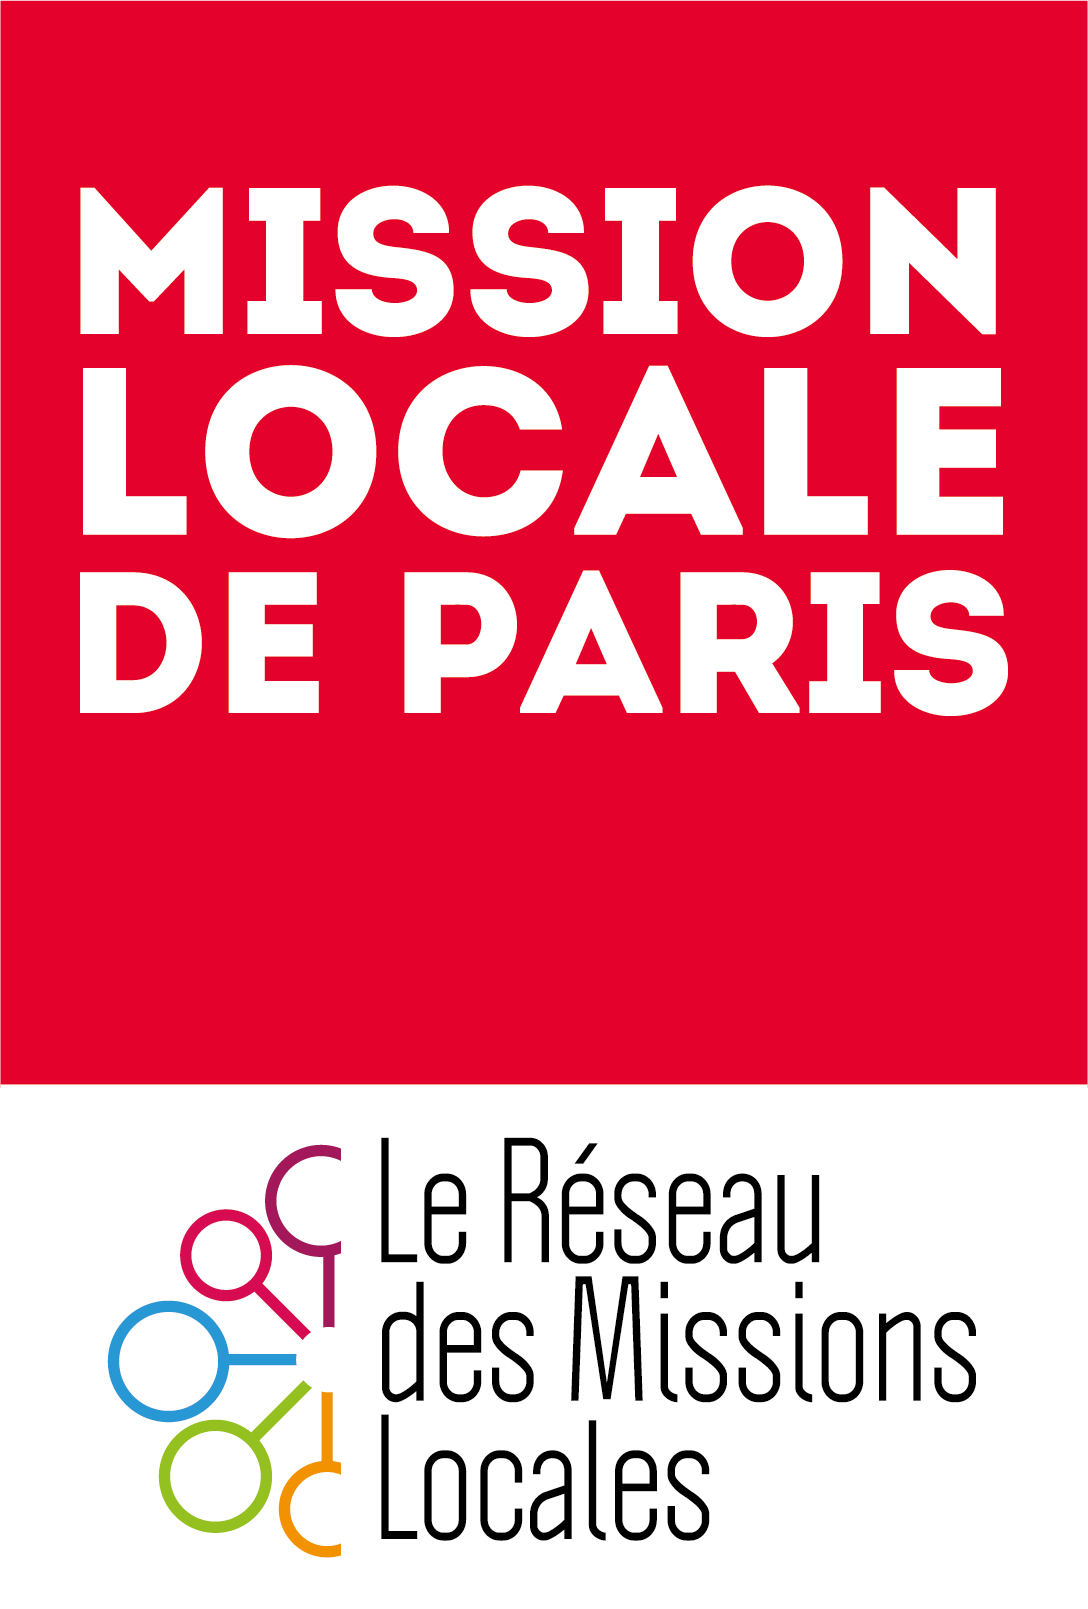 logo de Mission Locale de Paris